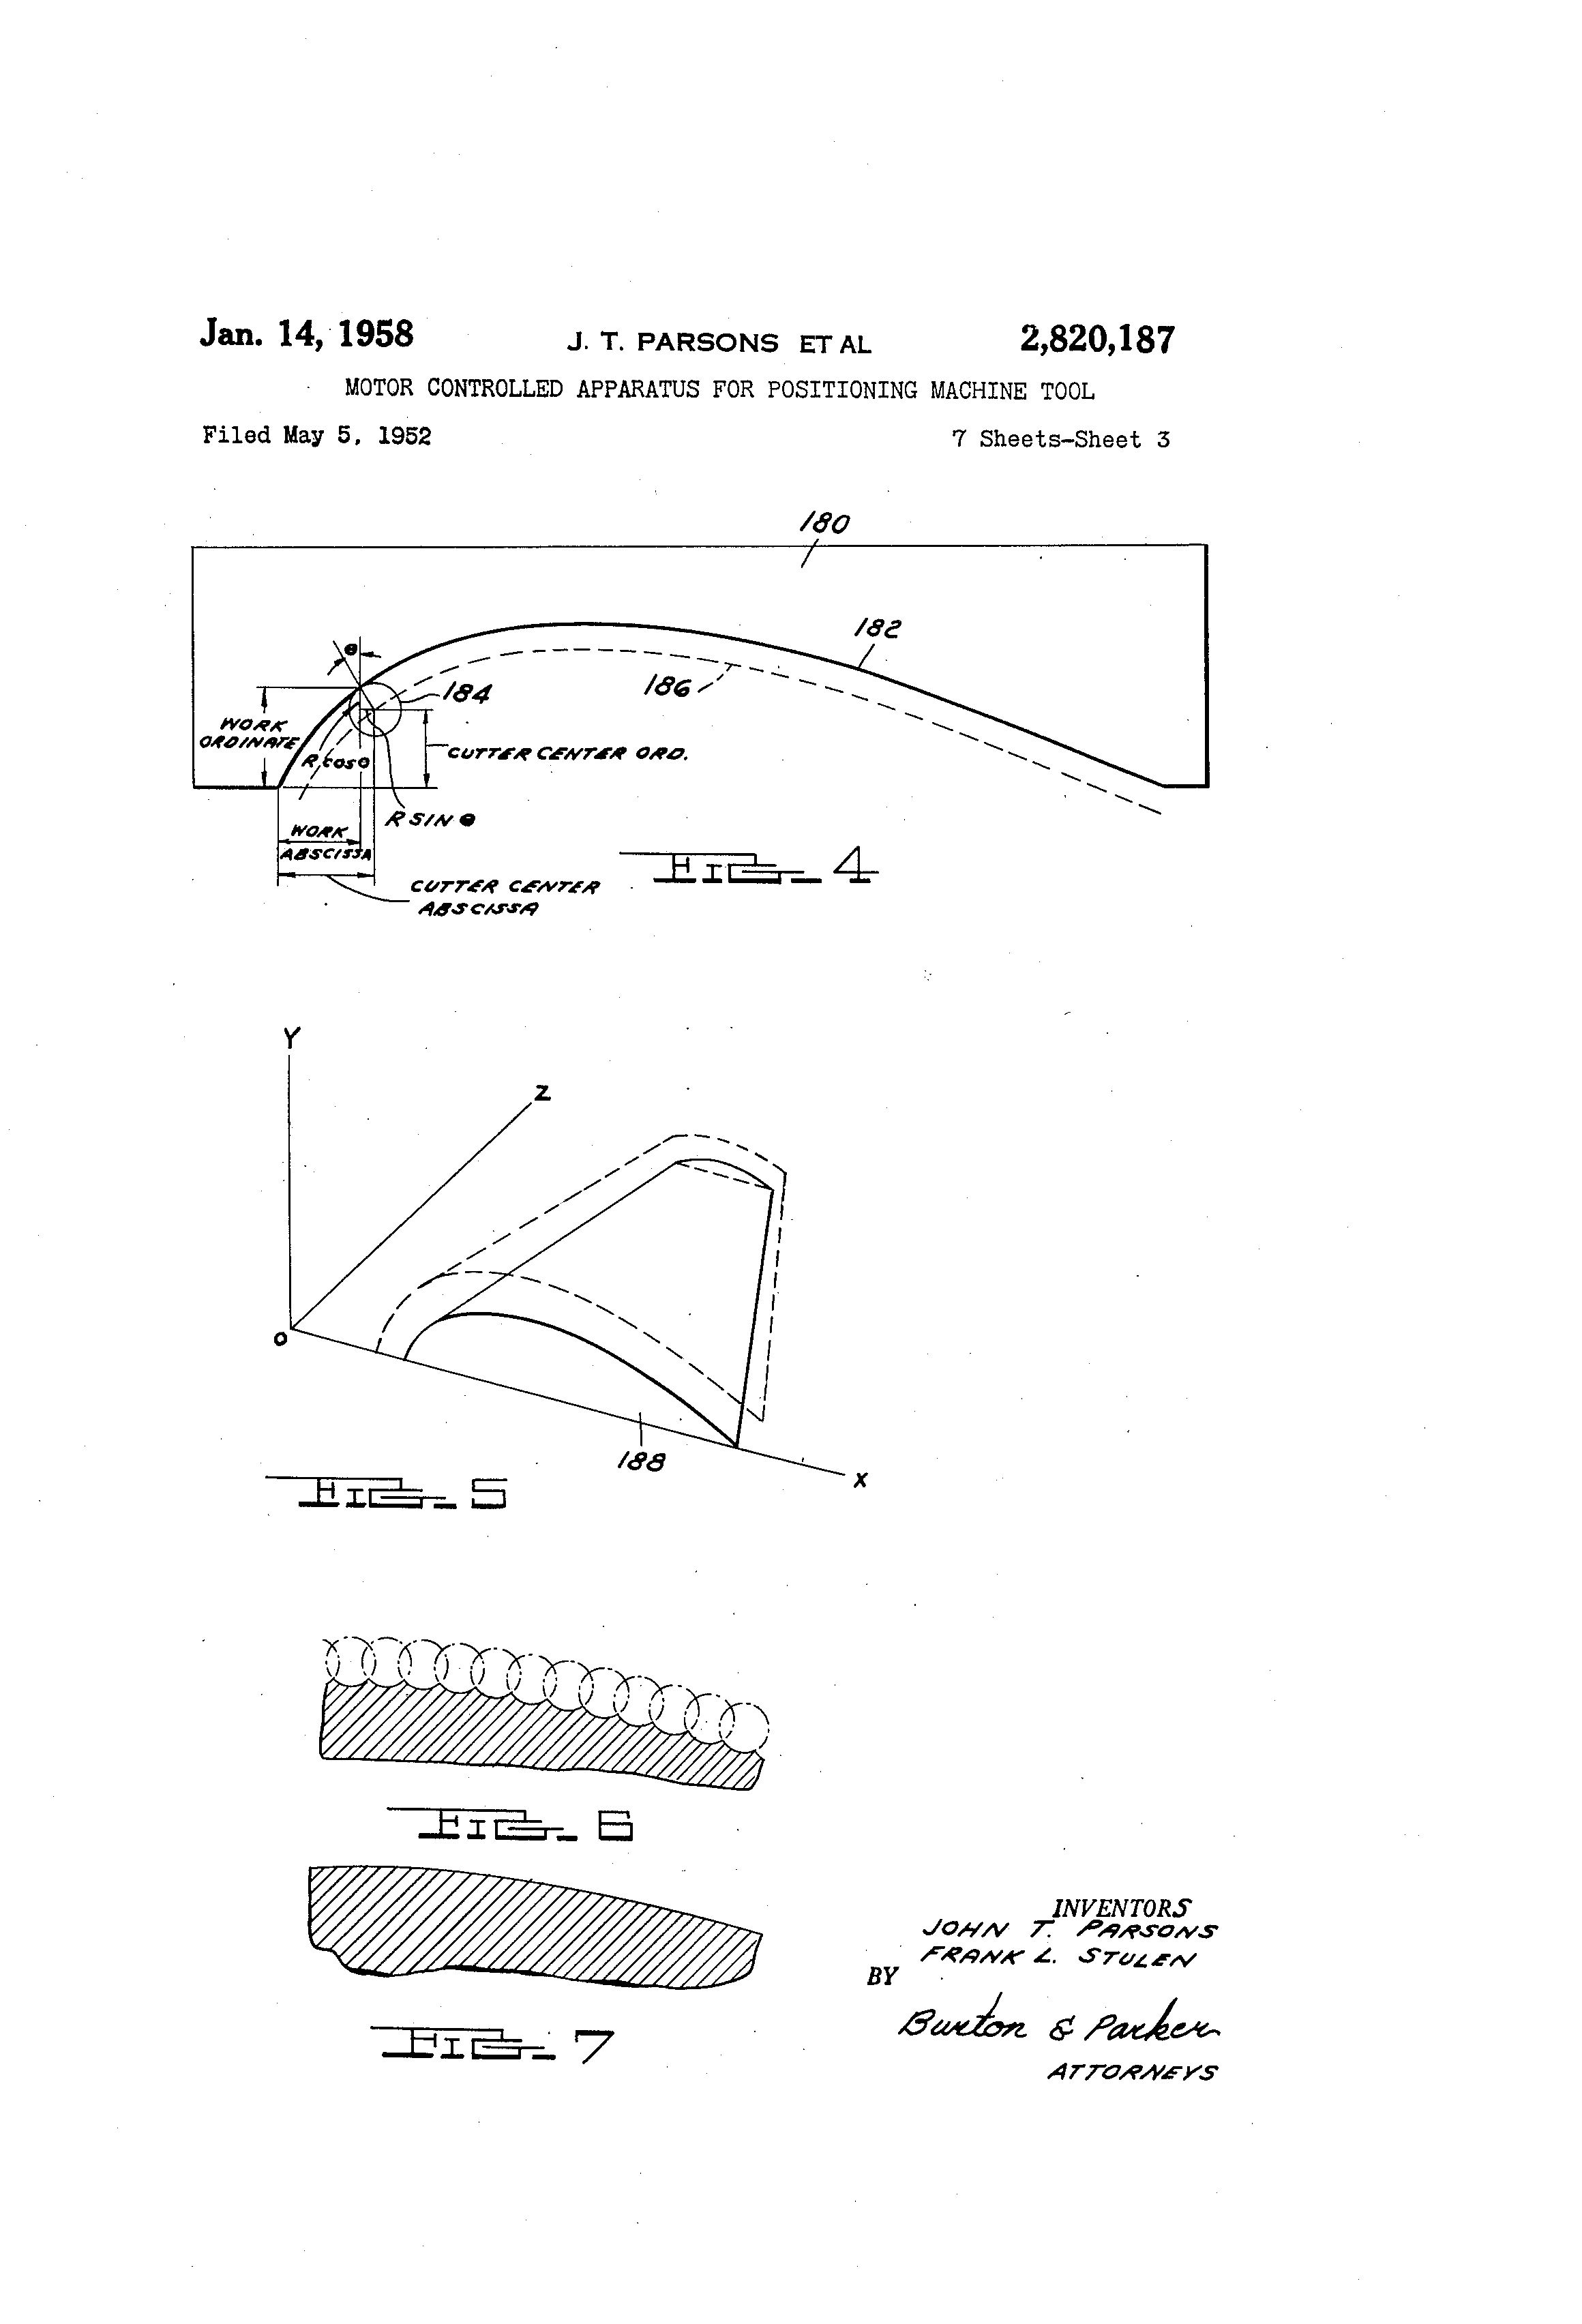 Figure 1: Excerpt from Parsons's Patent